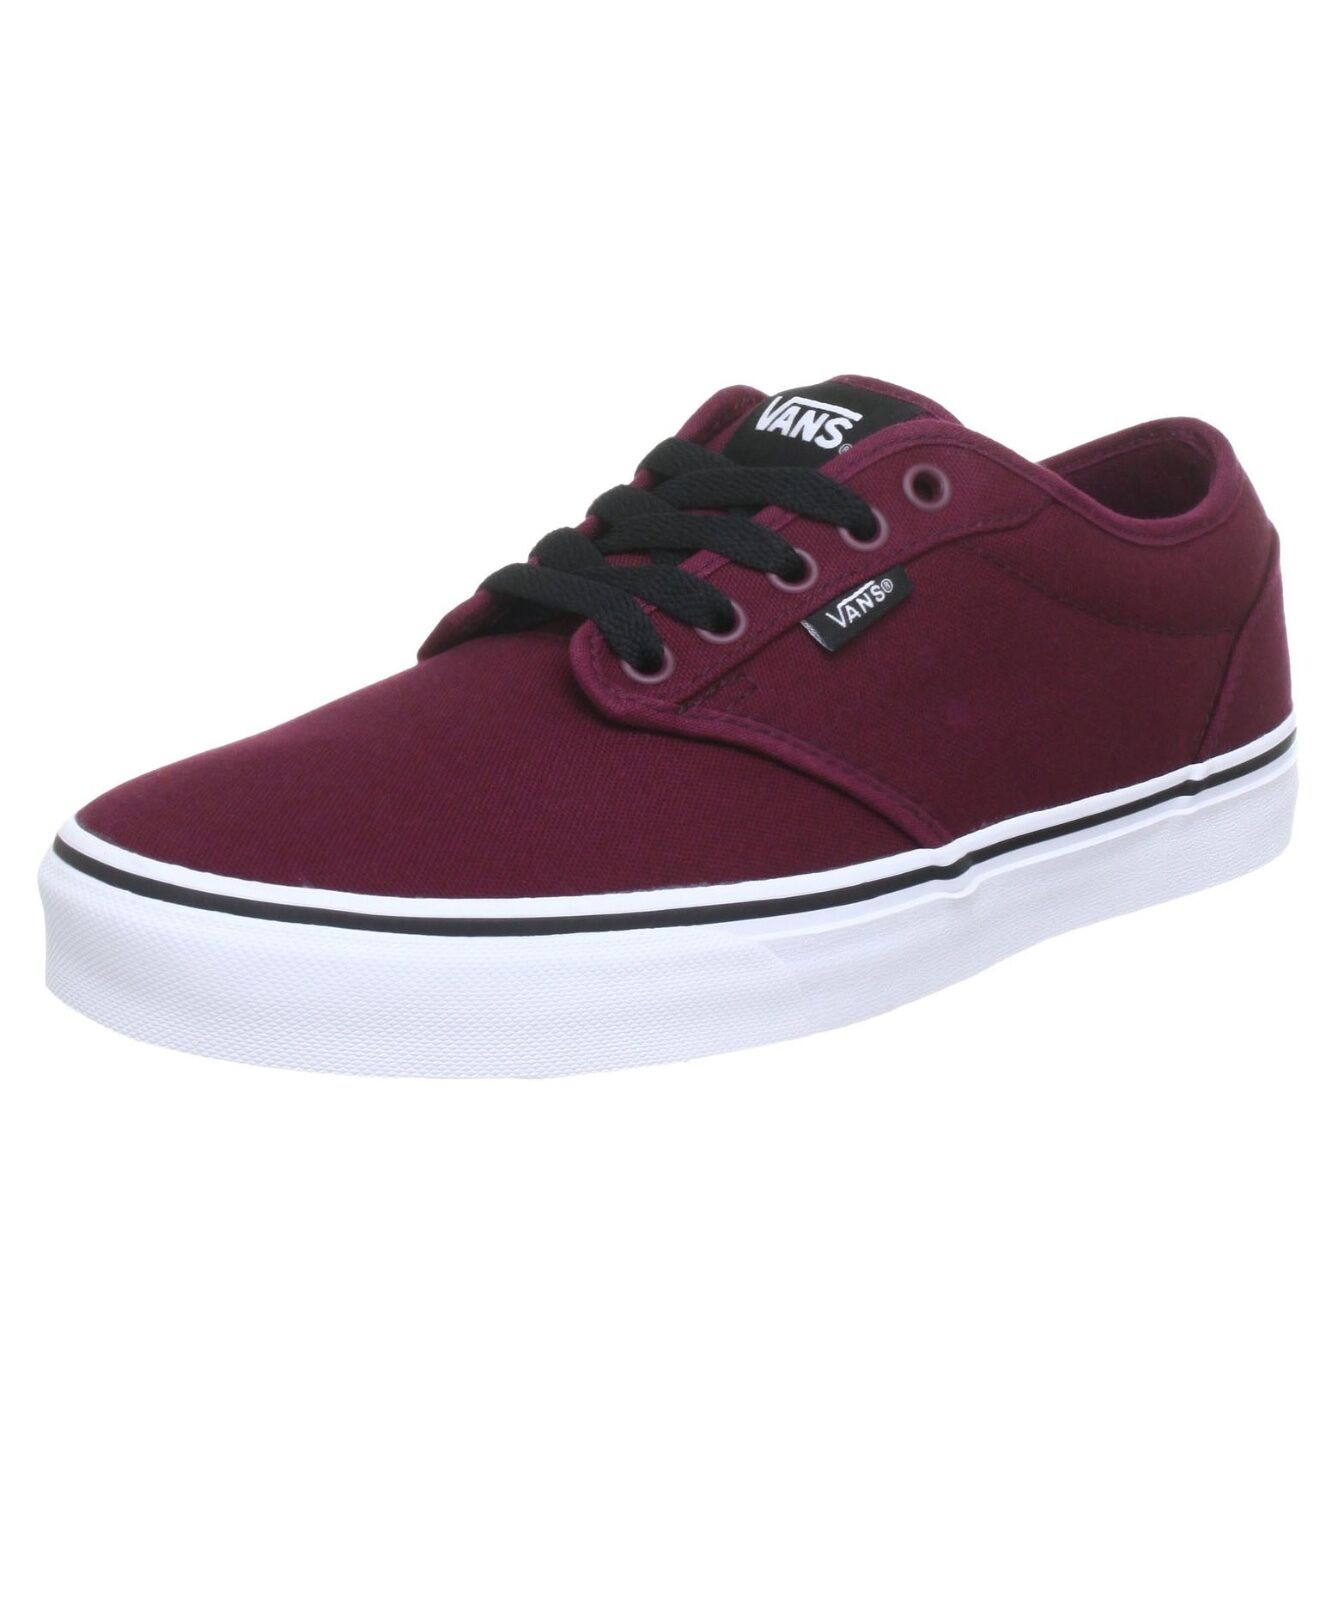 VANS Atwood Hombre Canvas Up Skater Trainers Plain Zapatos Lace Up Canvas Plimsolls Oxblood 646cd2